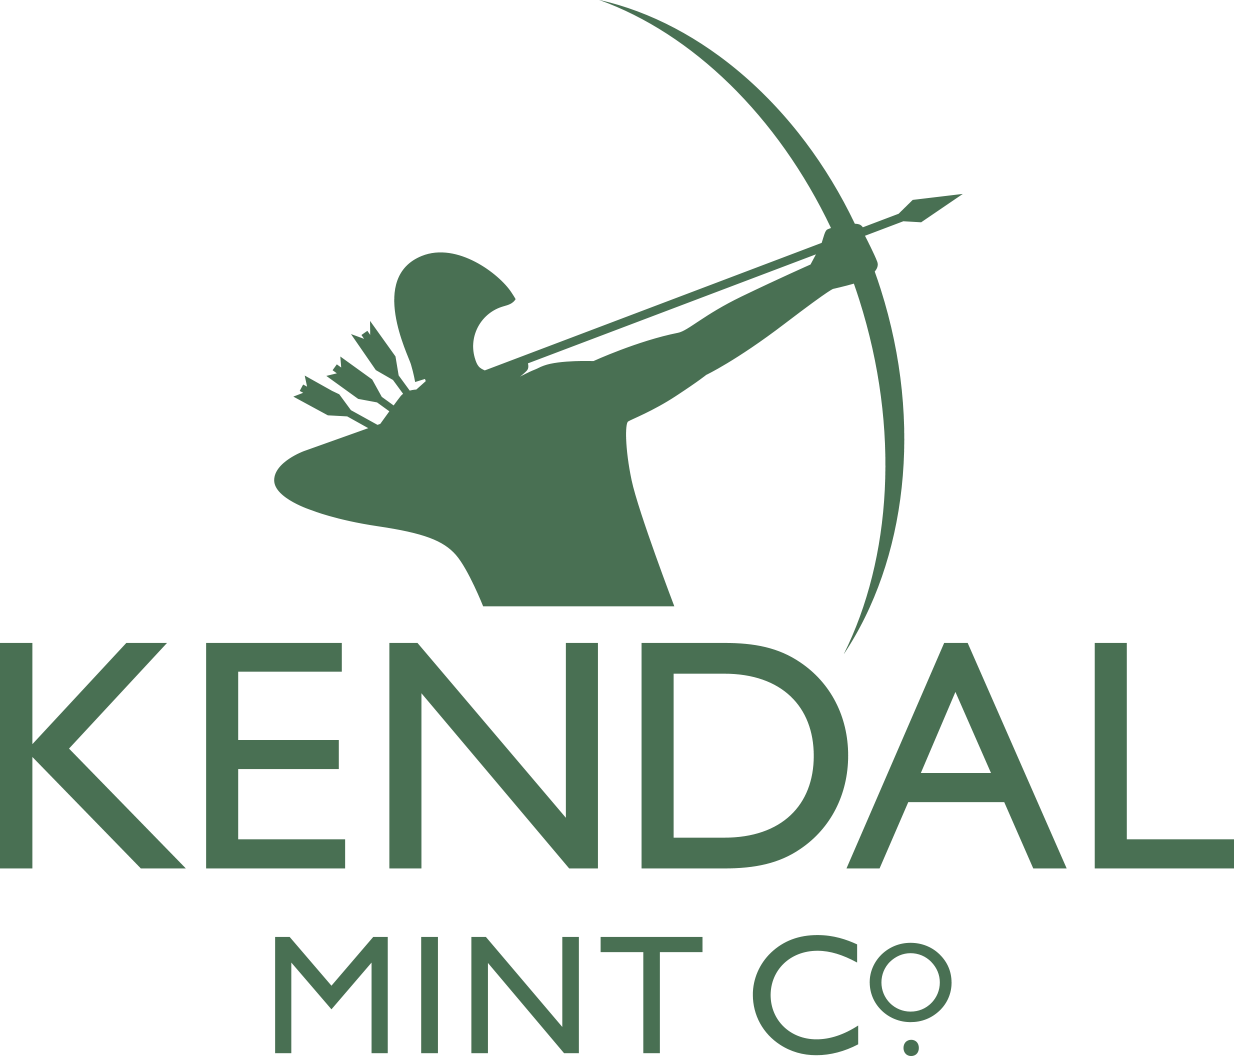 Kendal Mint Co® | Everest Conquering Nutrition